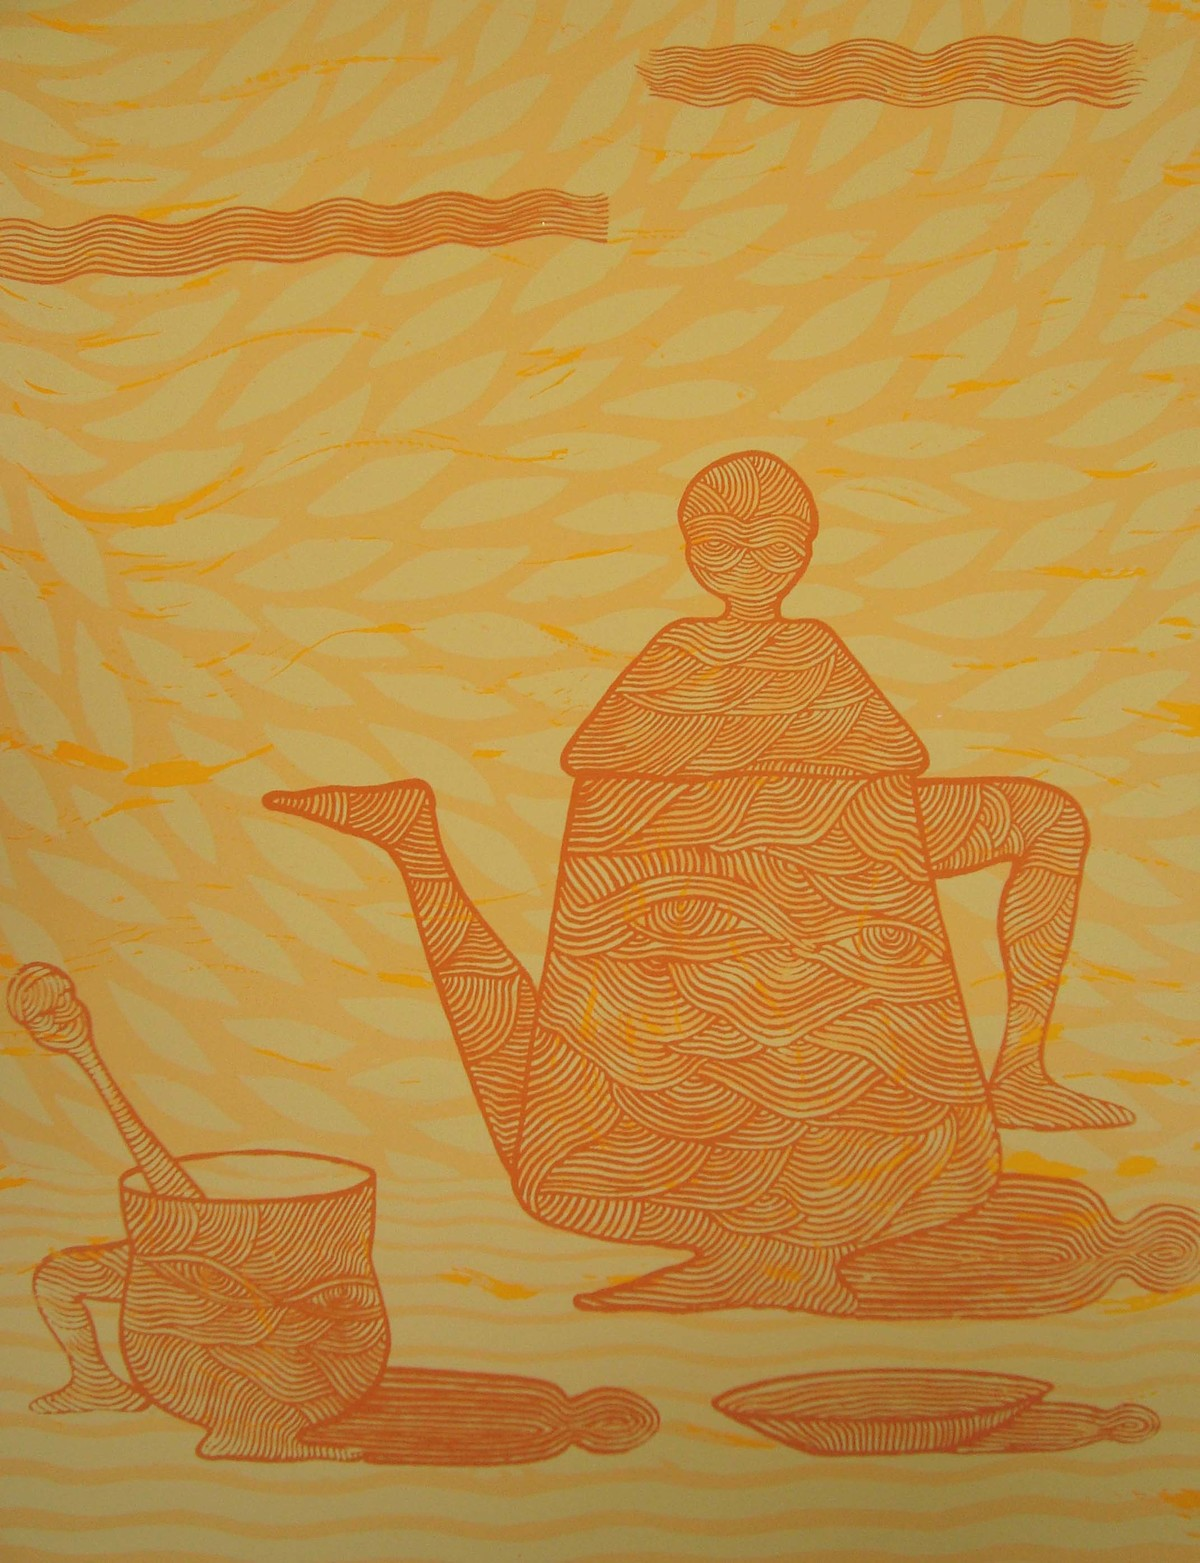 good morning by Santosh, Expressionism Printmaking, Serigraph on Paper, Beige color